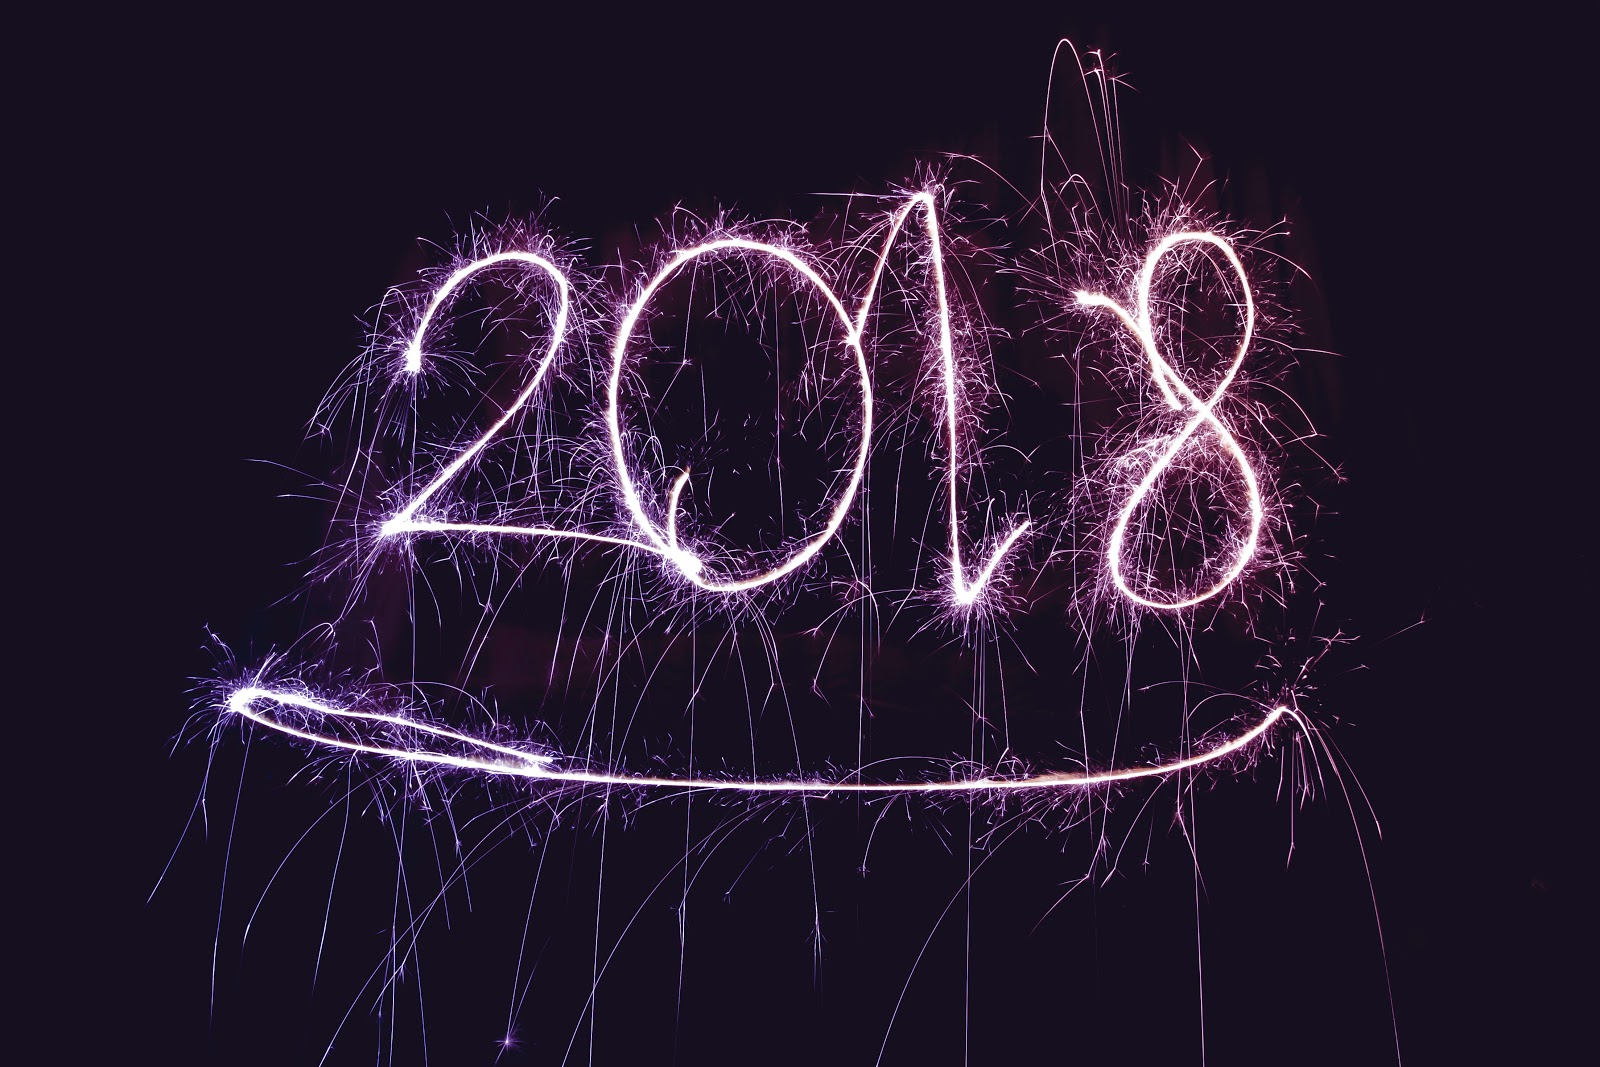 Crowds will soon celebrate when the glittering crystal ball drops in Times Square. This singular moment will postmark a time to stop delaying and make 2018 a season for the fulfillment of your deepest dreams and desires.